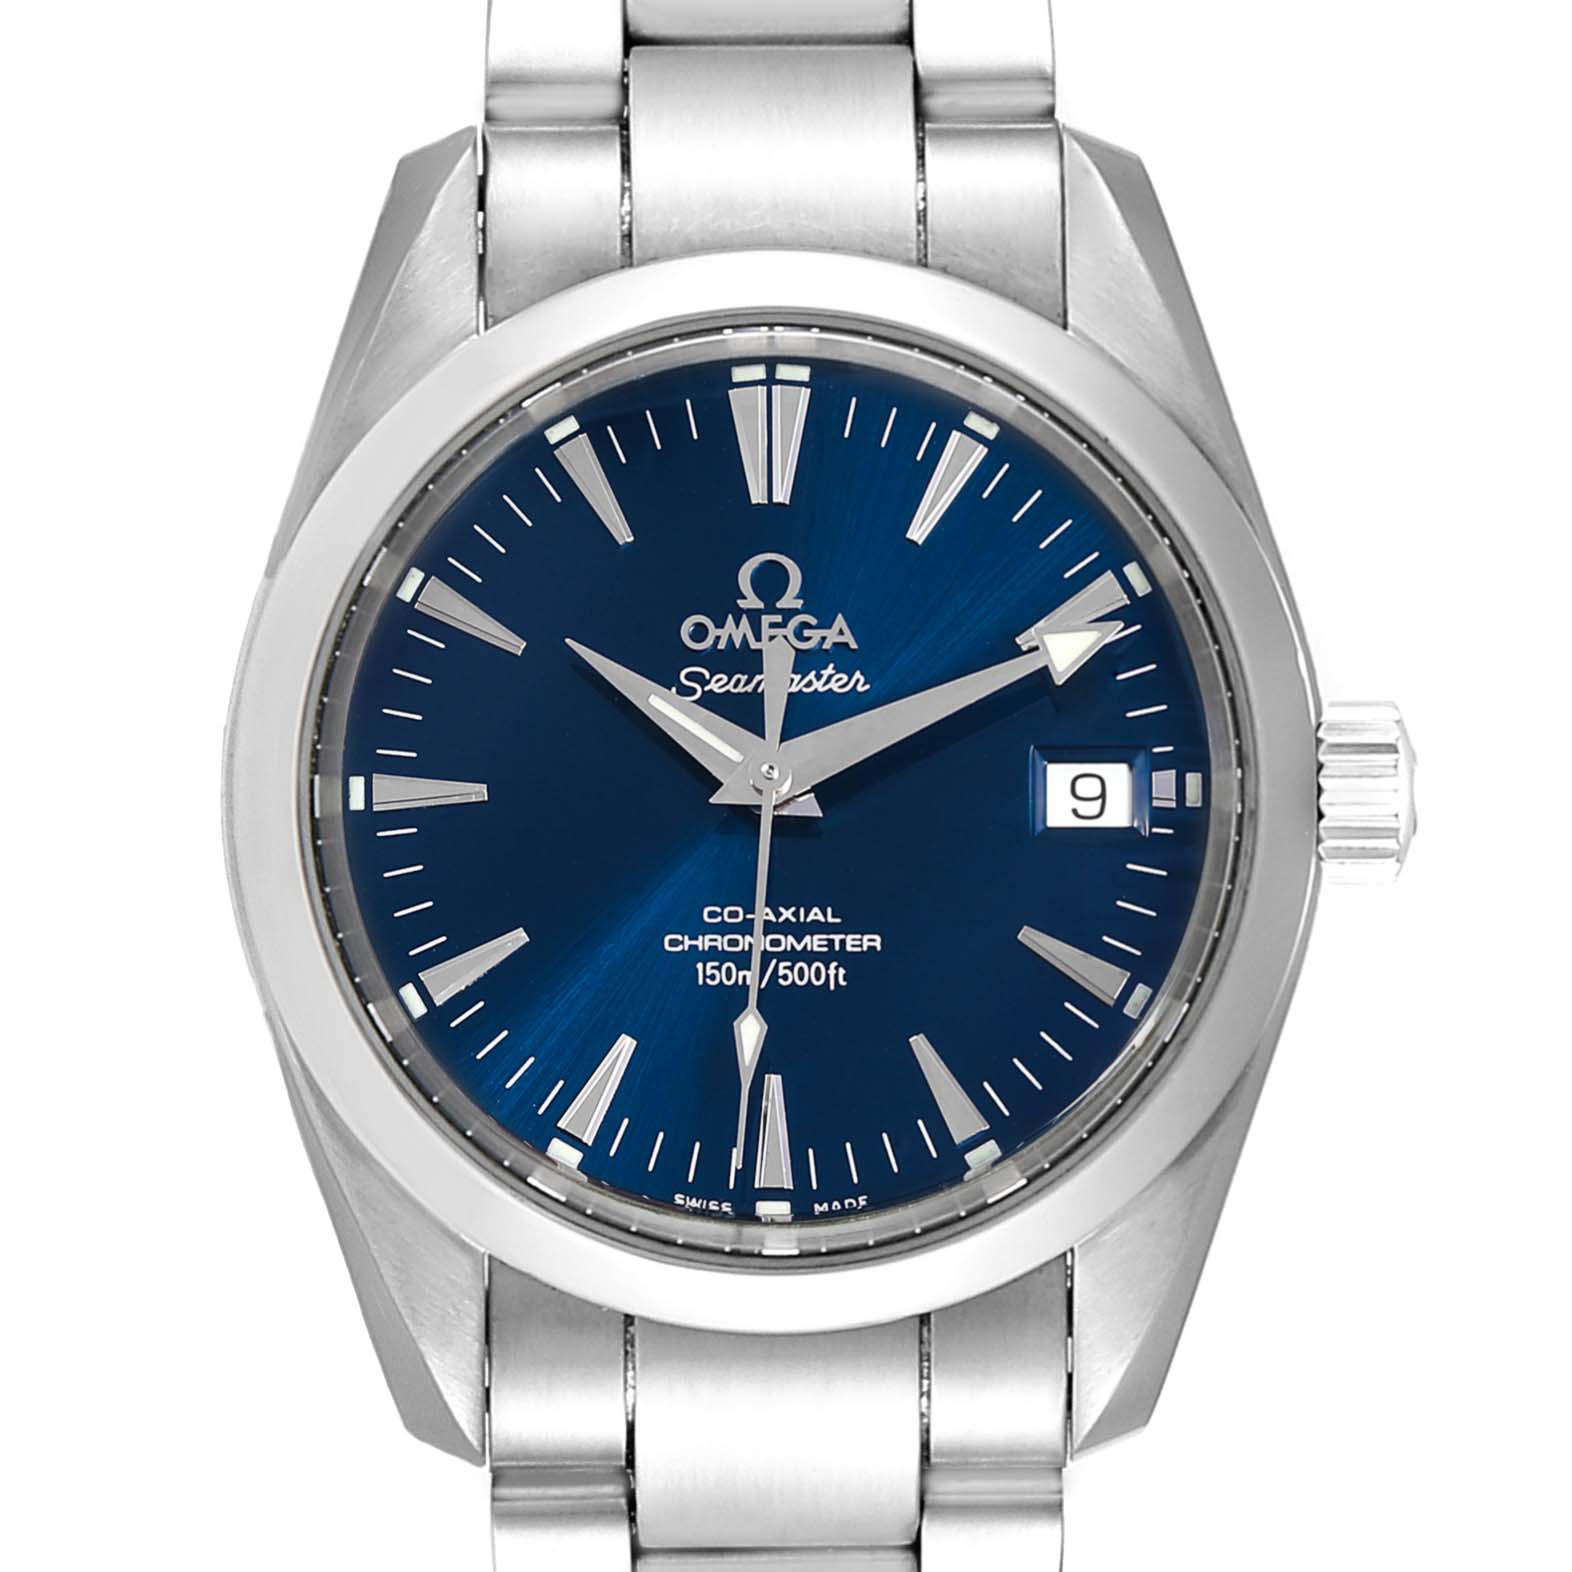 Omega Seamaster Aqua Terra 36 Blue Dial Steel Watch 2504.80.00 Box Card